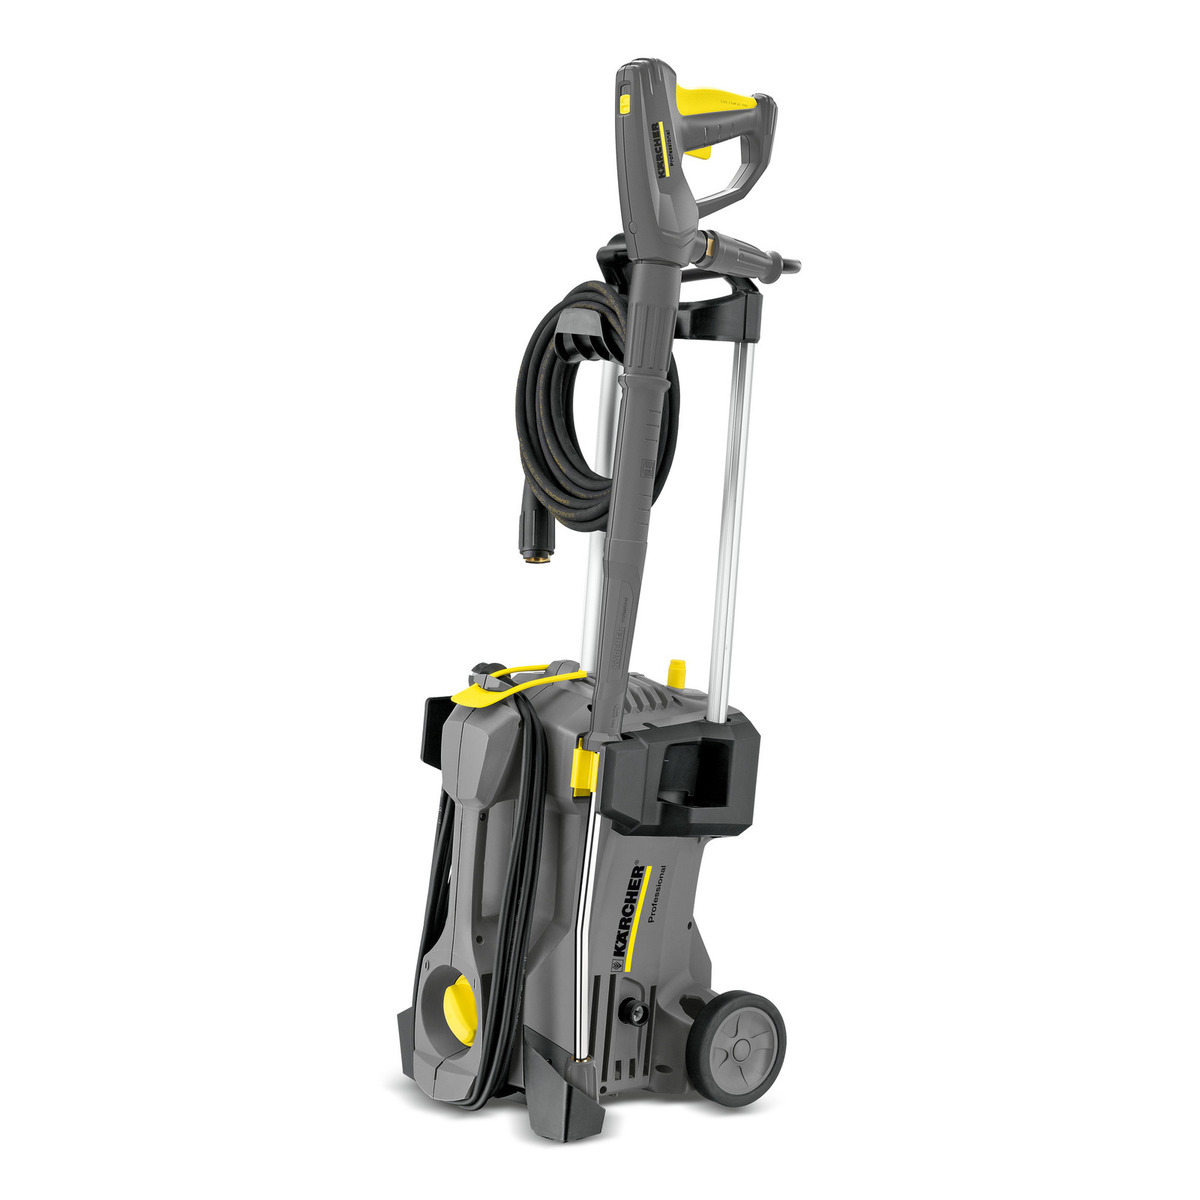 Karcher High Pressure Cold Water Cleaner HD511P